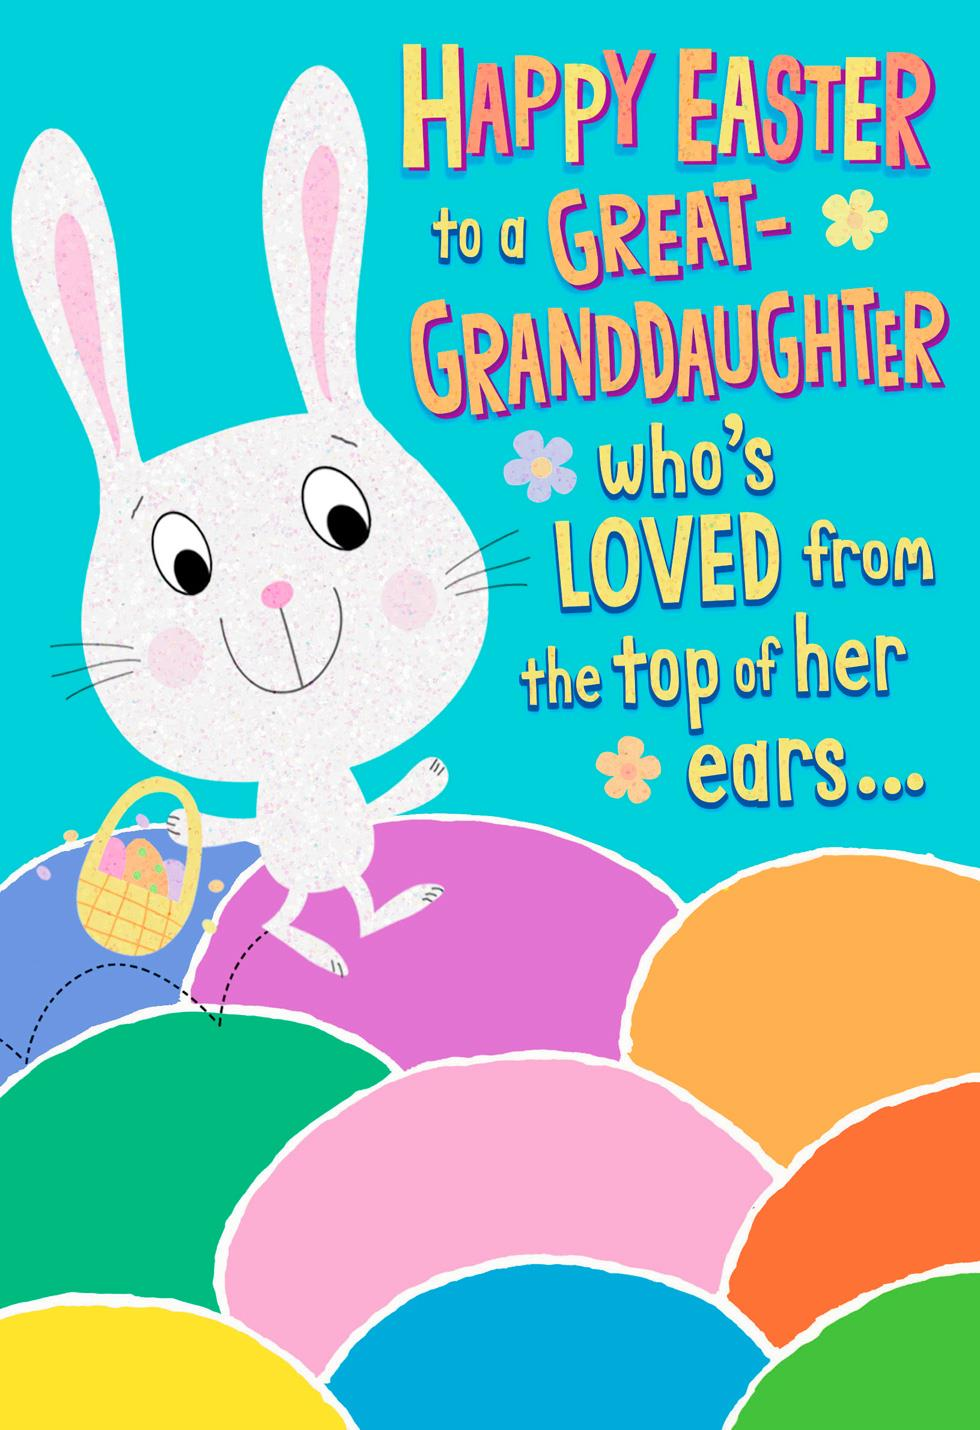 Great Granddaughter Colorful Eggs Easter Card Greeting